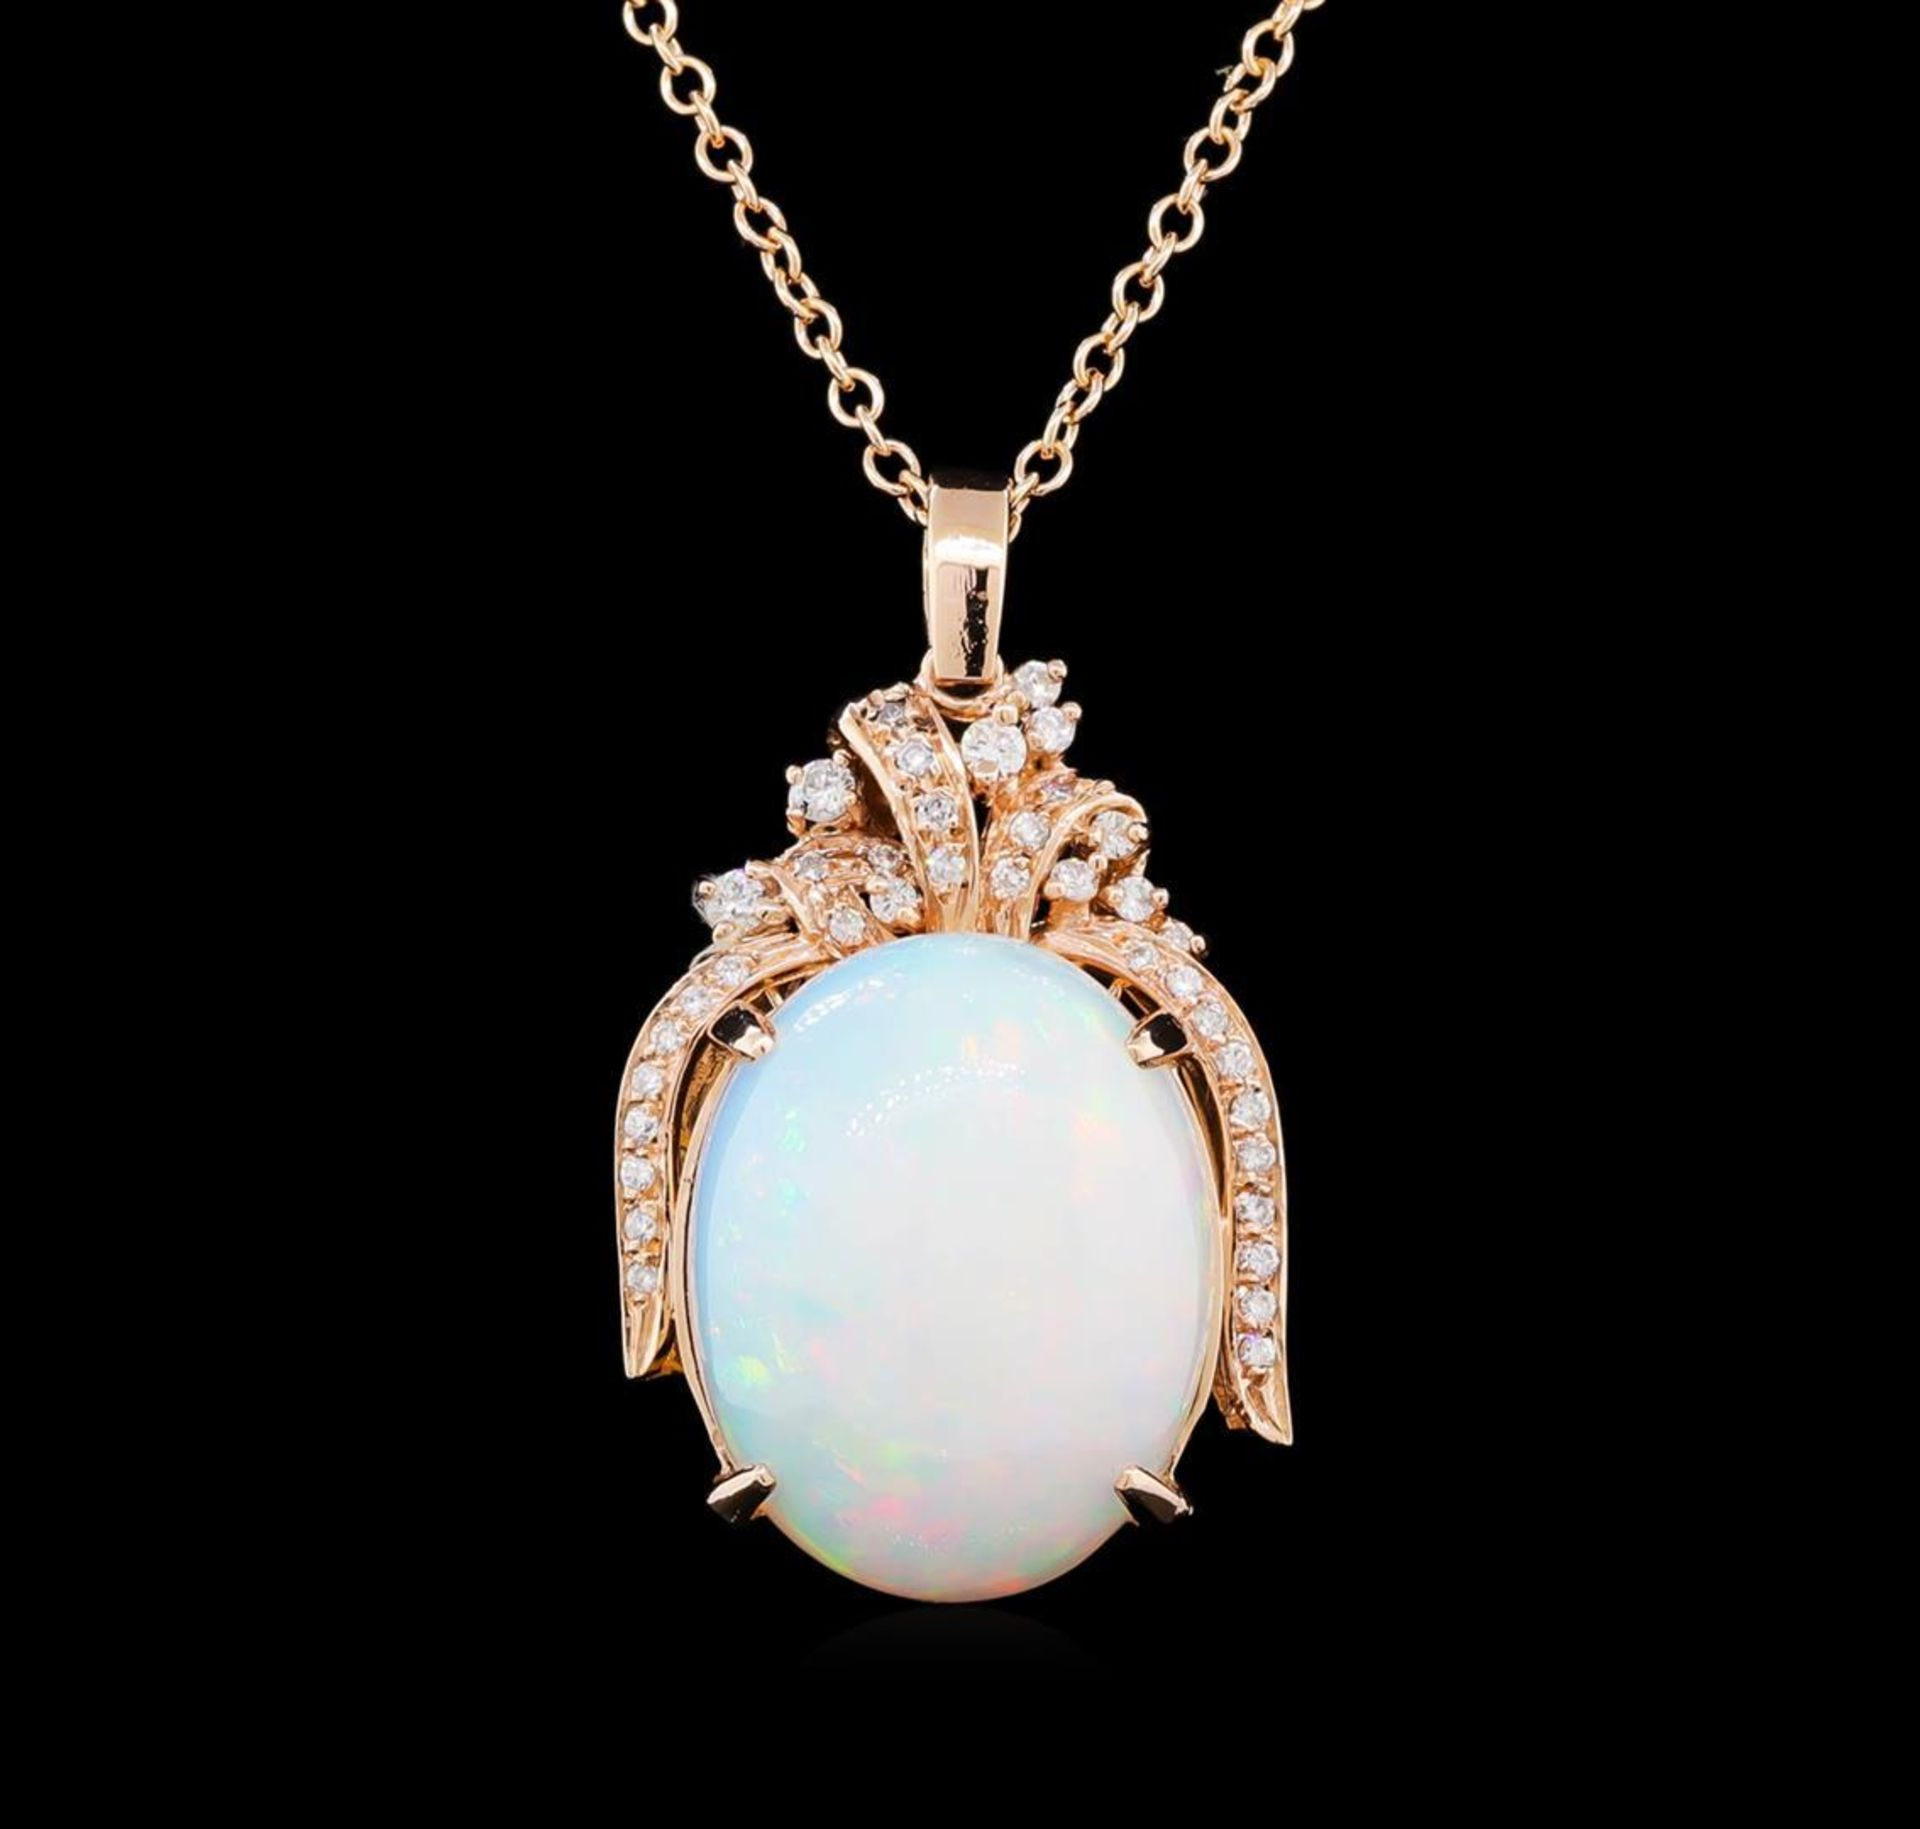 23.65 ctw Opal and Diamond Pendant With Chain - 14KT Rose Gold - Image 2 of 4